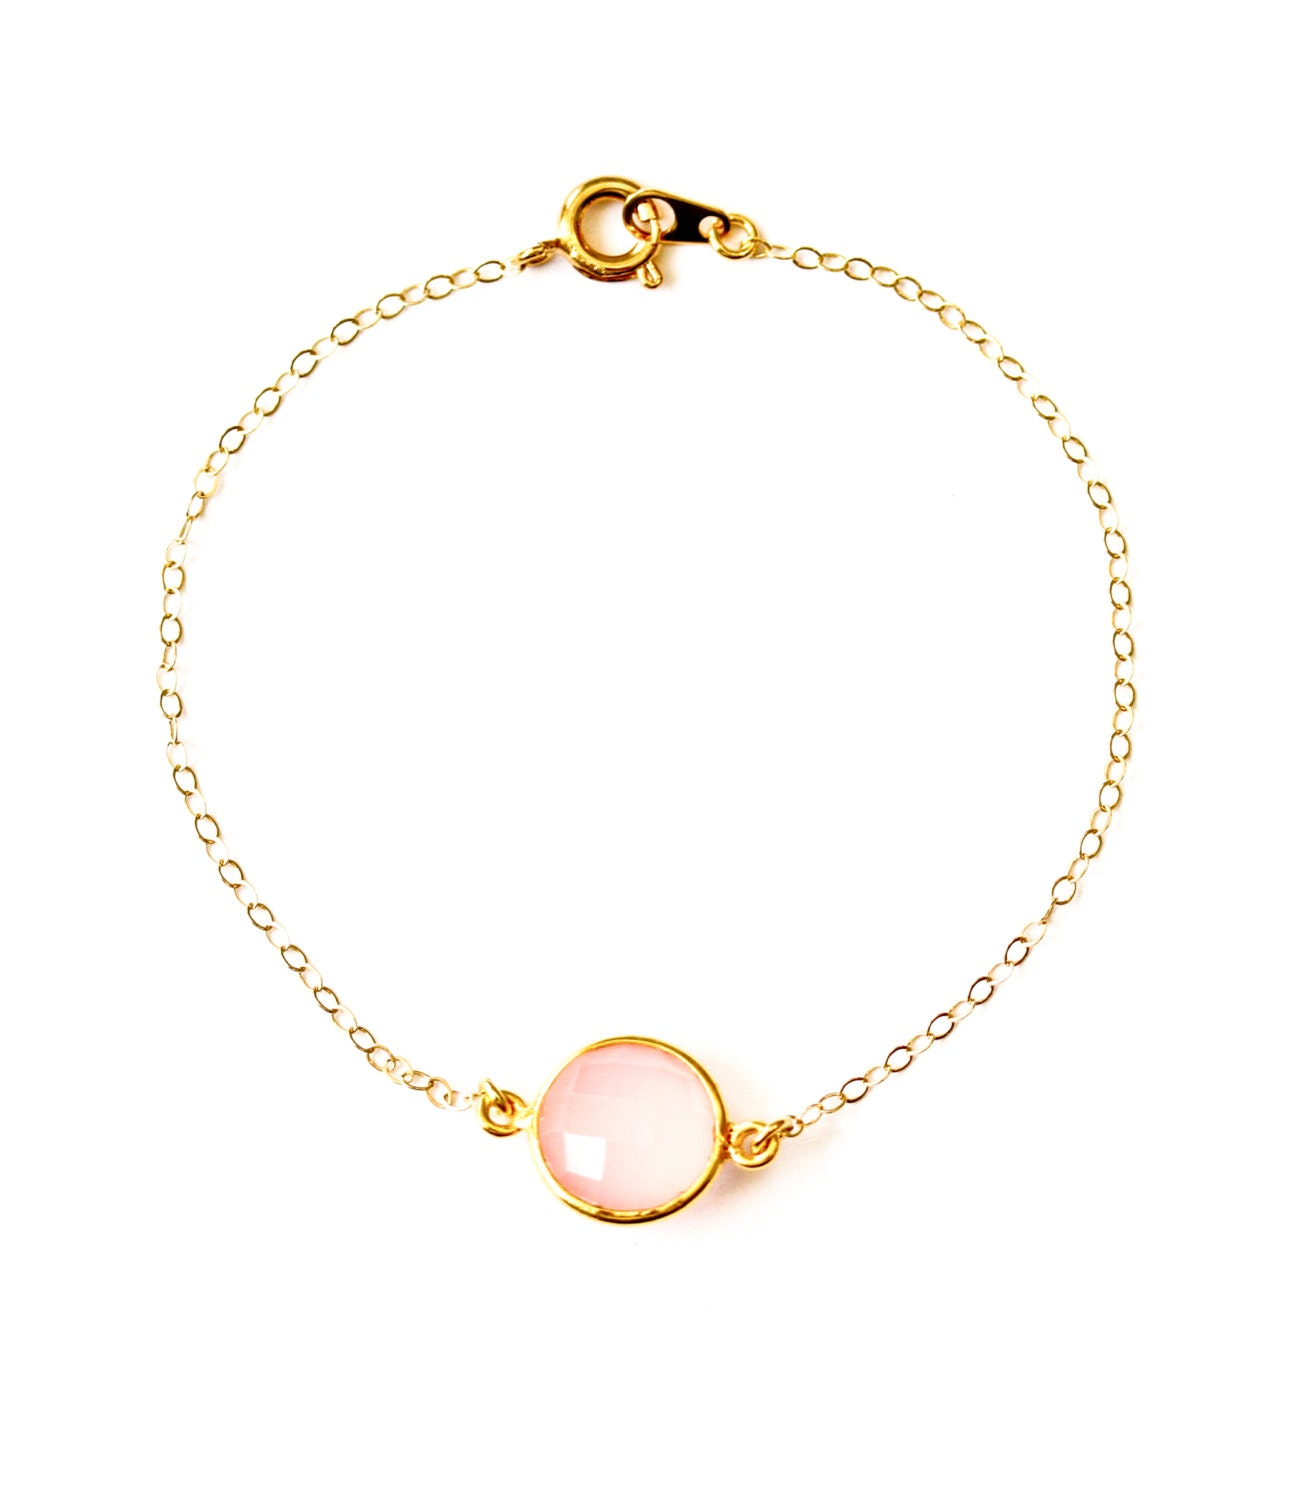 dainty gold bracelet delicate gold jewelry pink bridesmaid